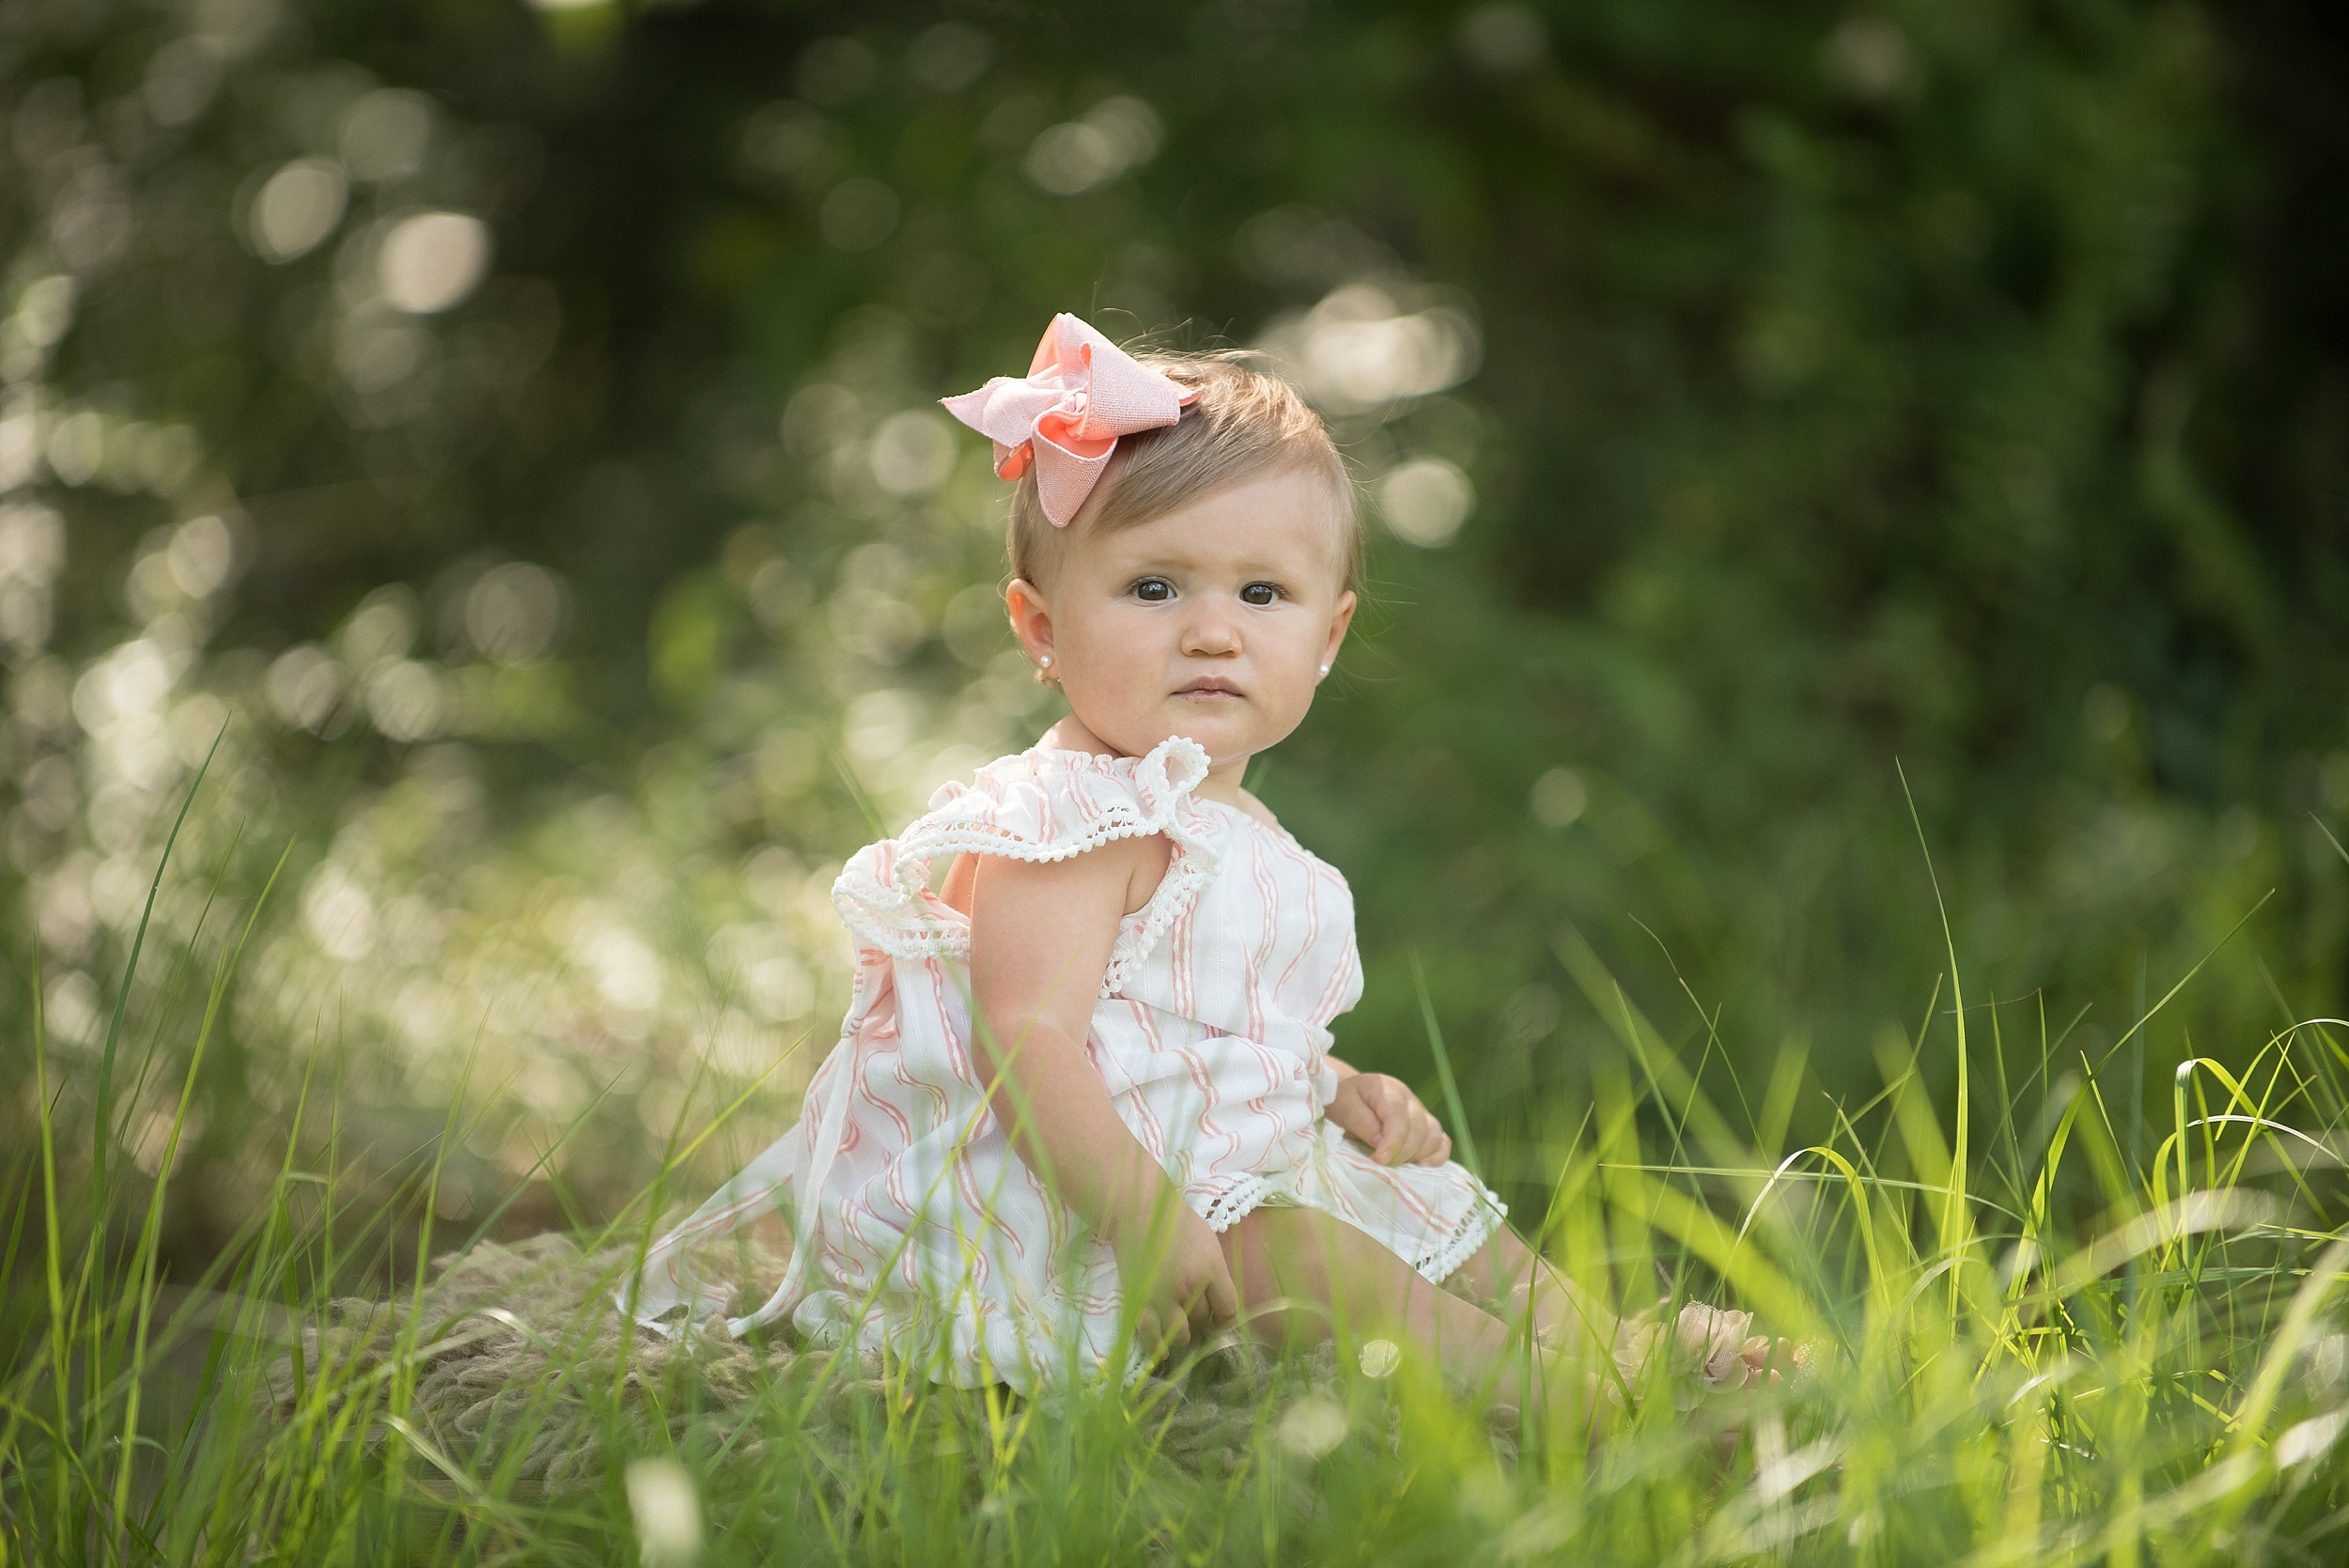 one year old girl with pink bow in a beautiful green outdoor setting